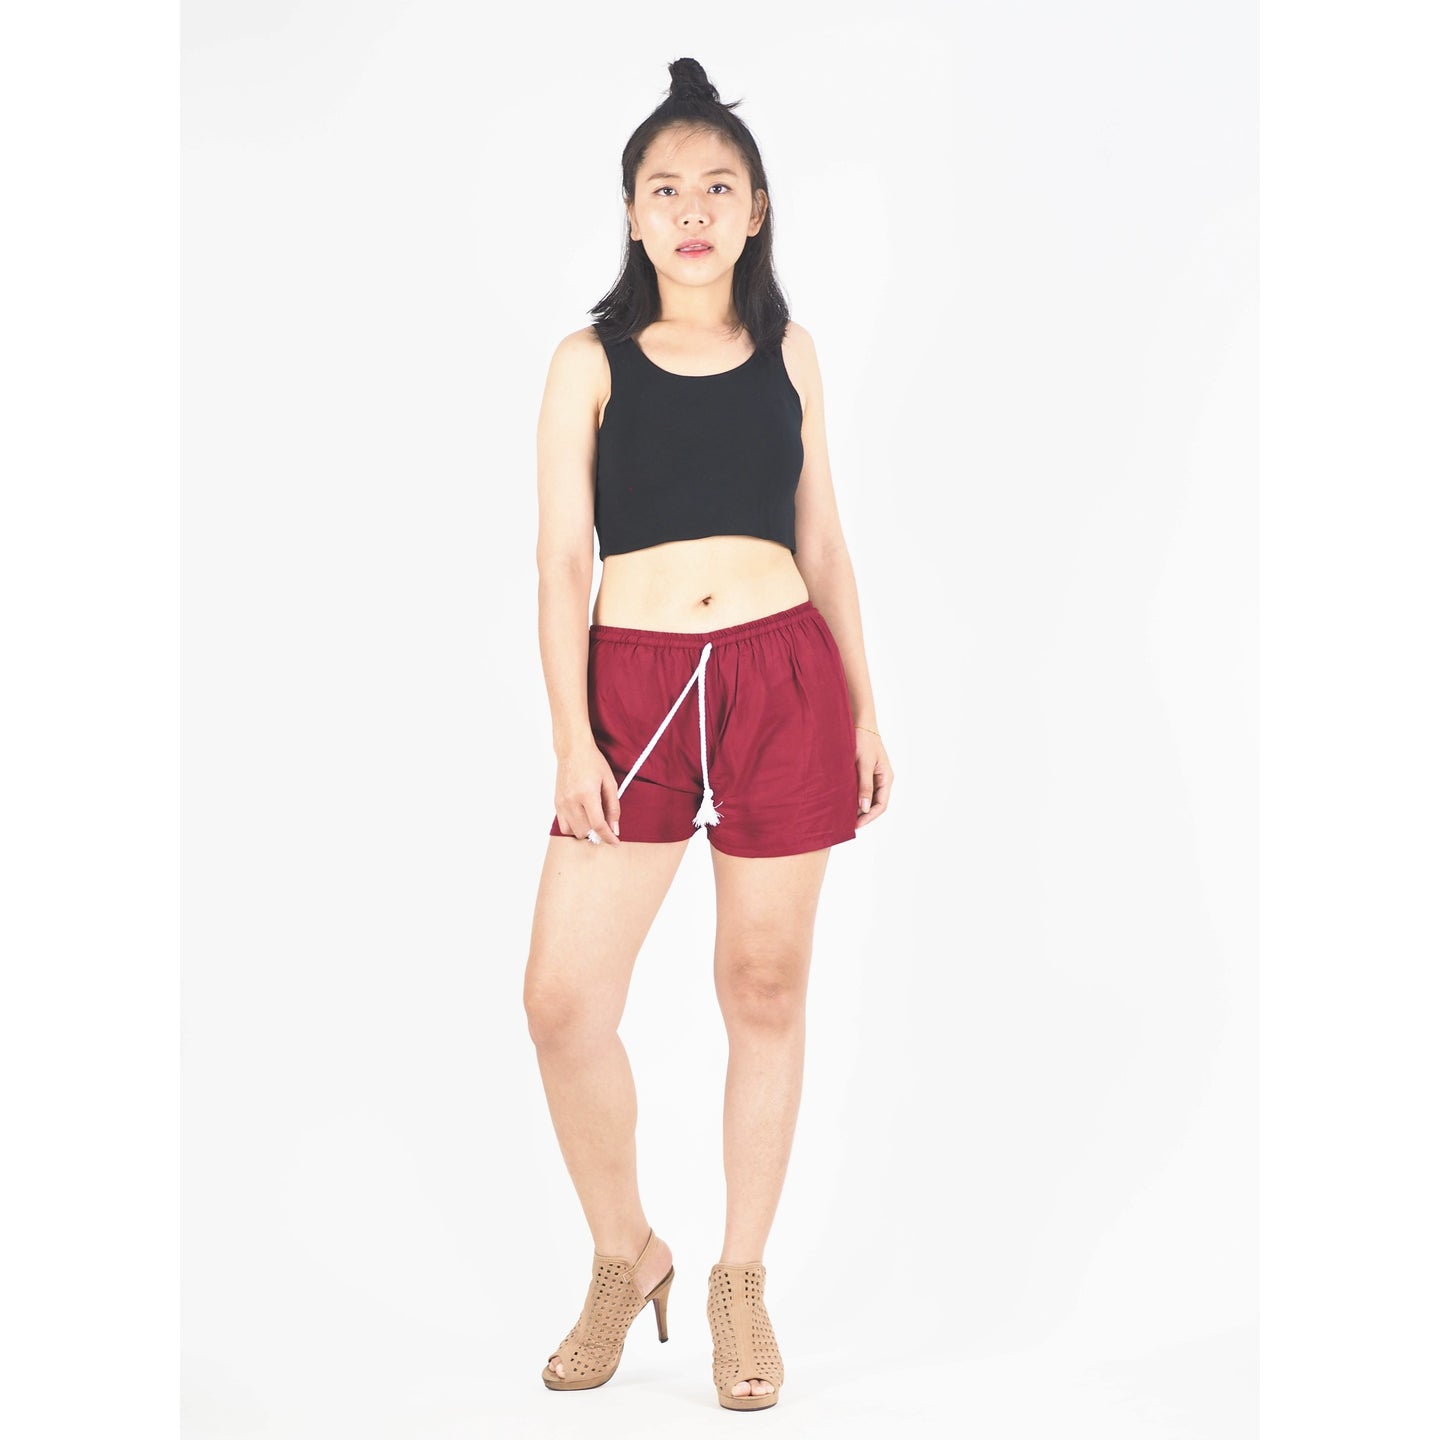 Solid Color Women's Shorts Drawstring Genie Pants in Burgundy PP0142 020000 15